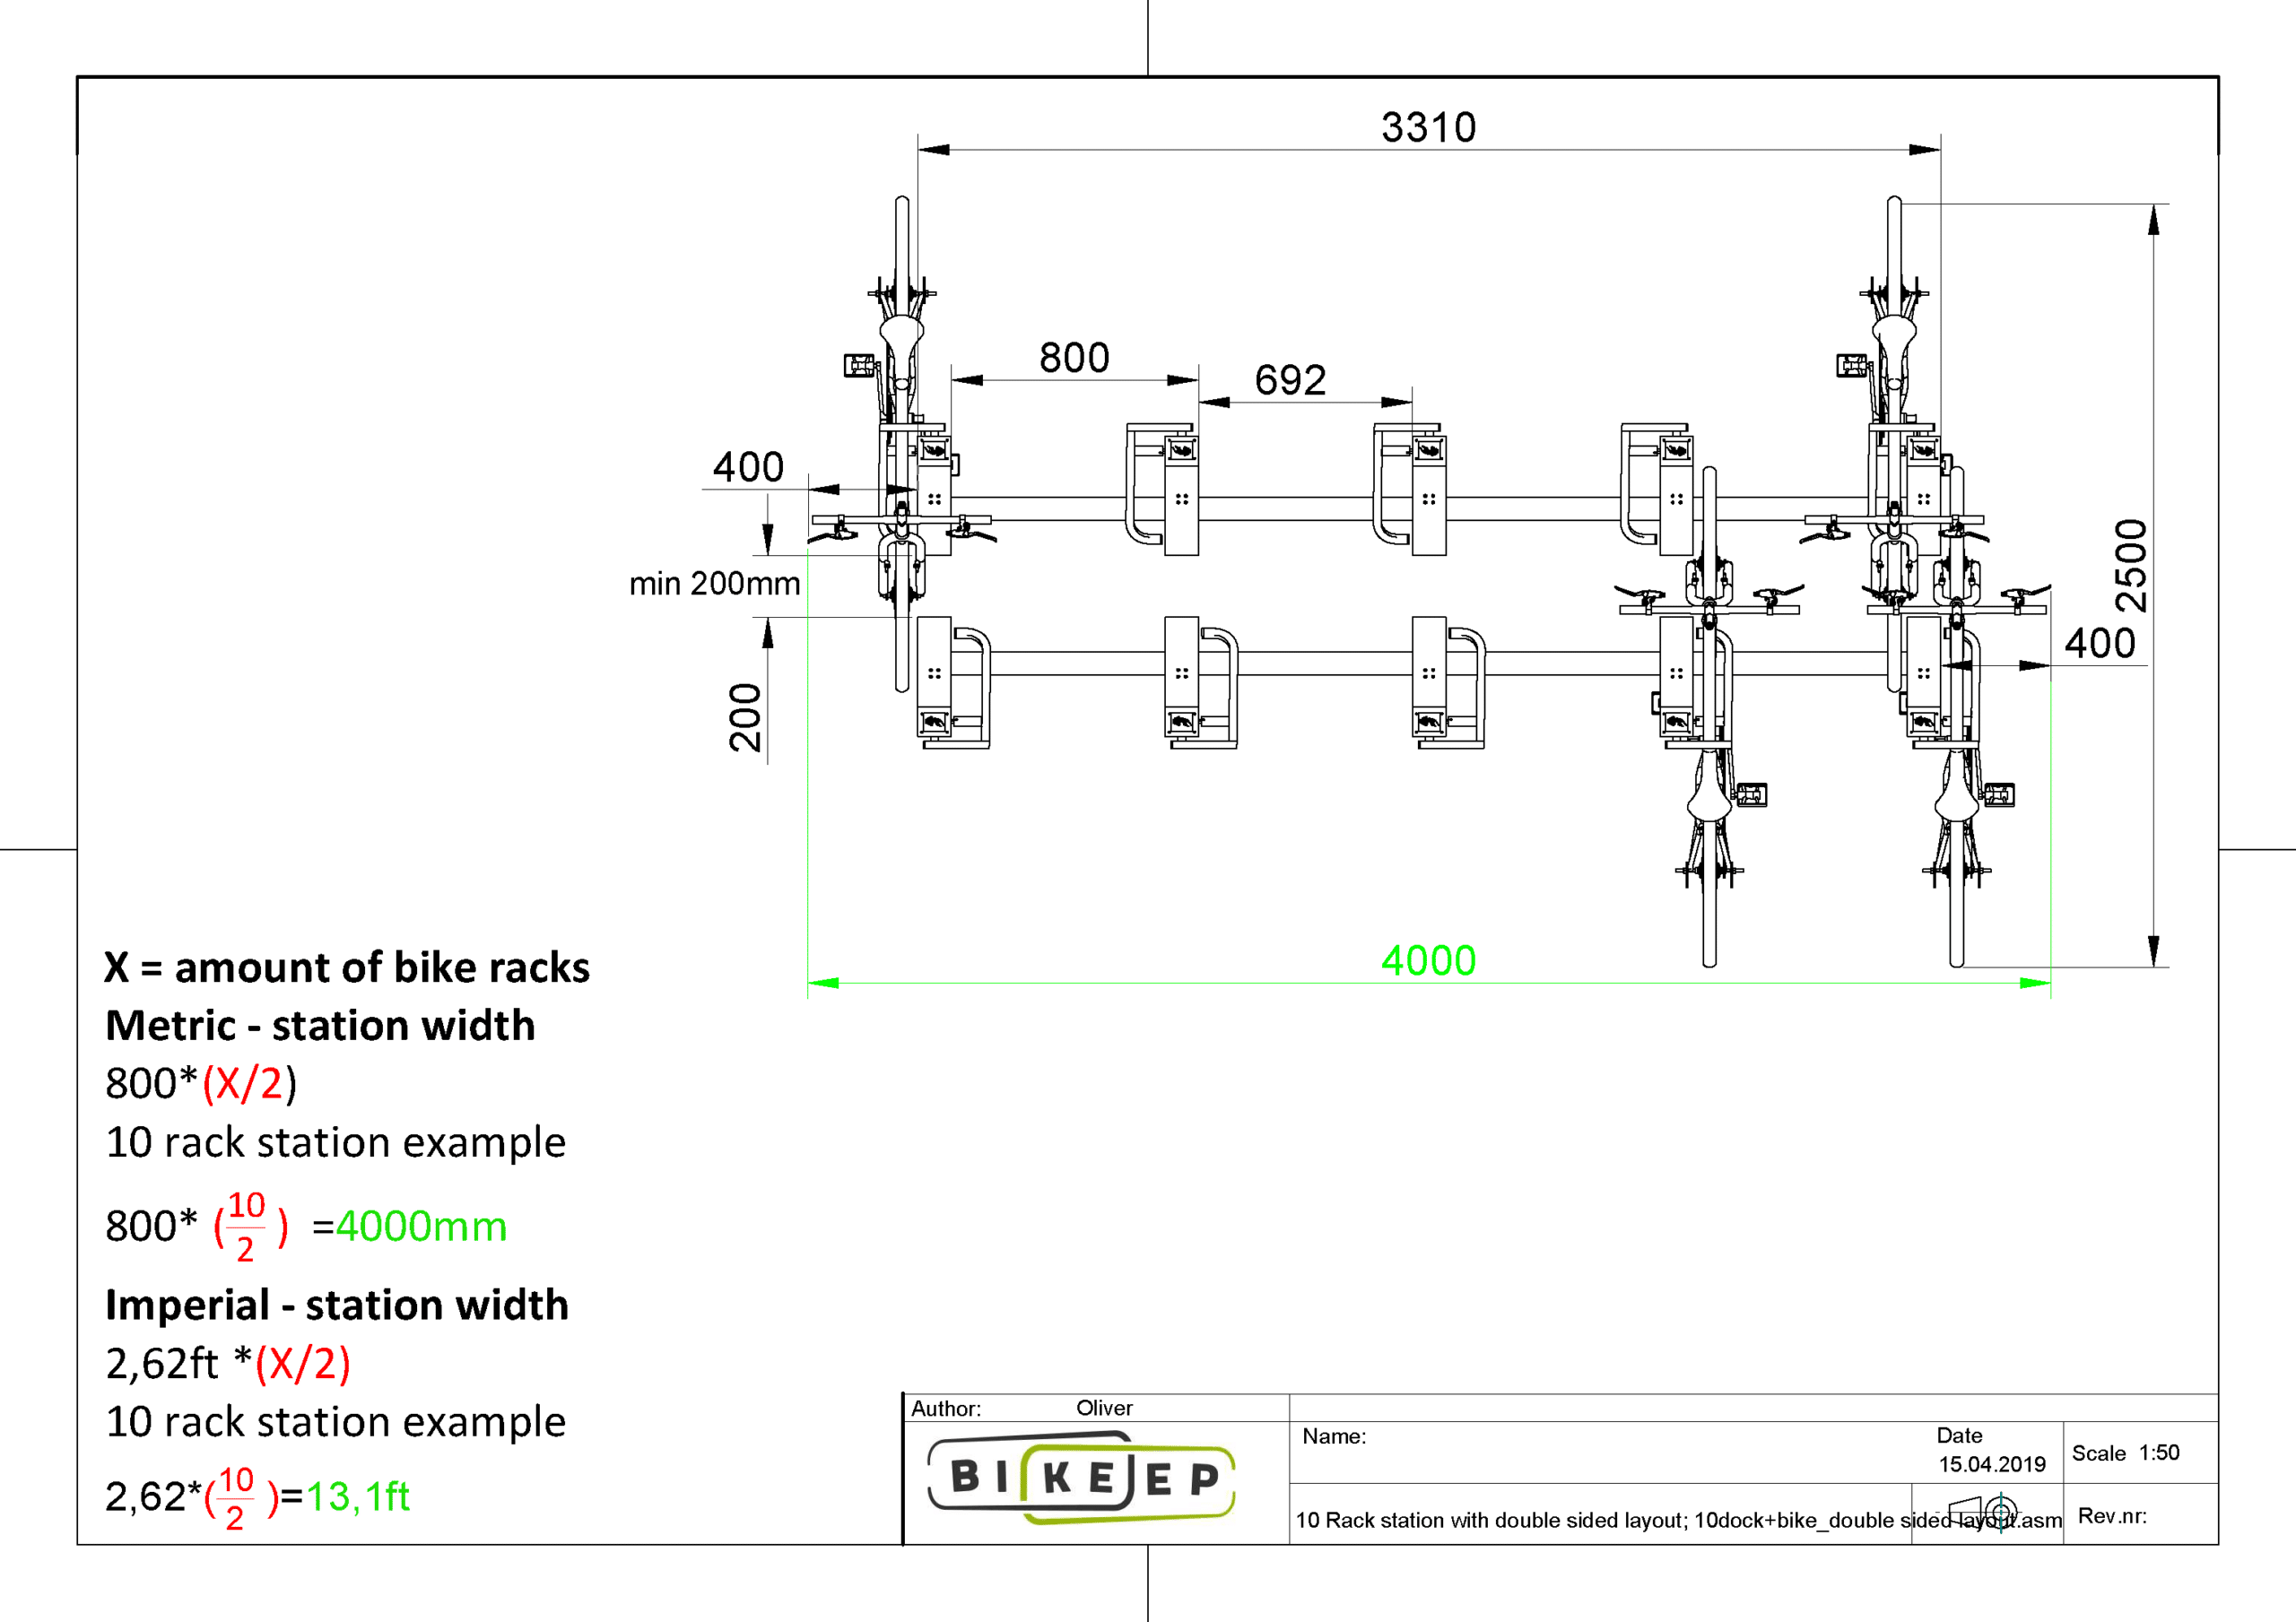 Rack station with double sided layout